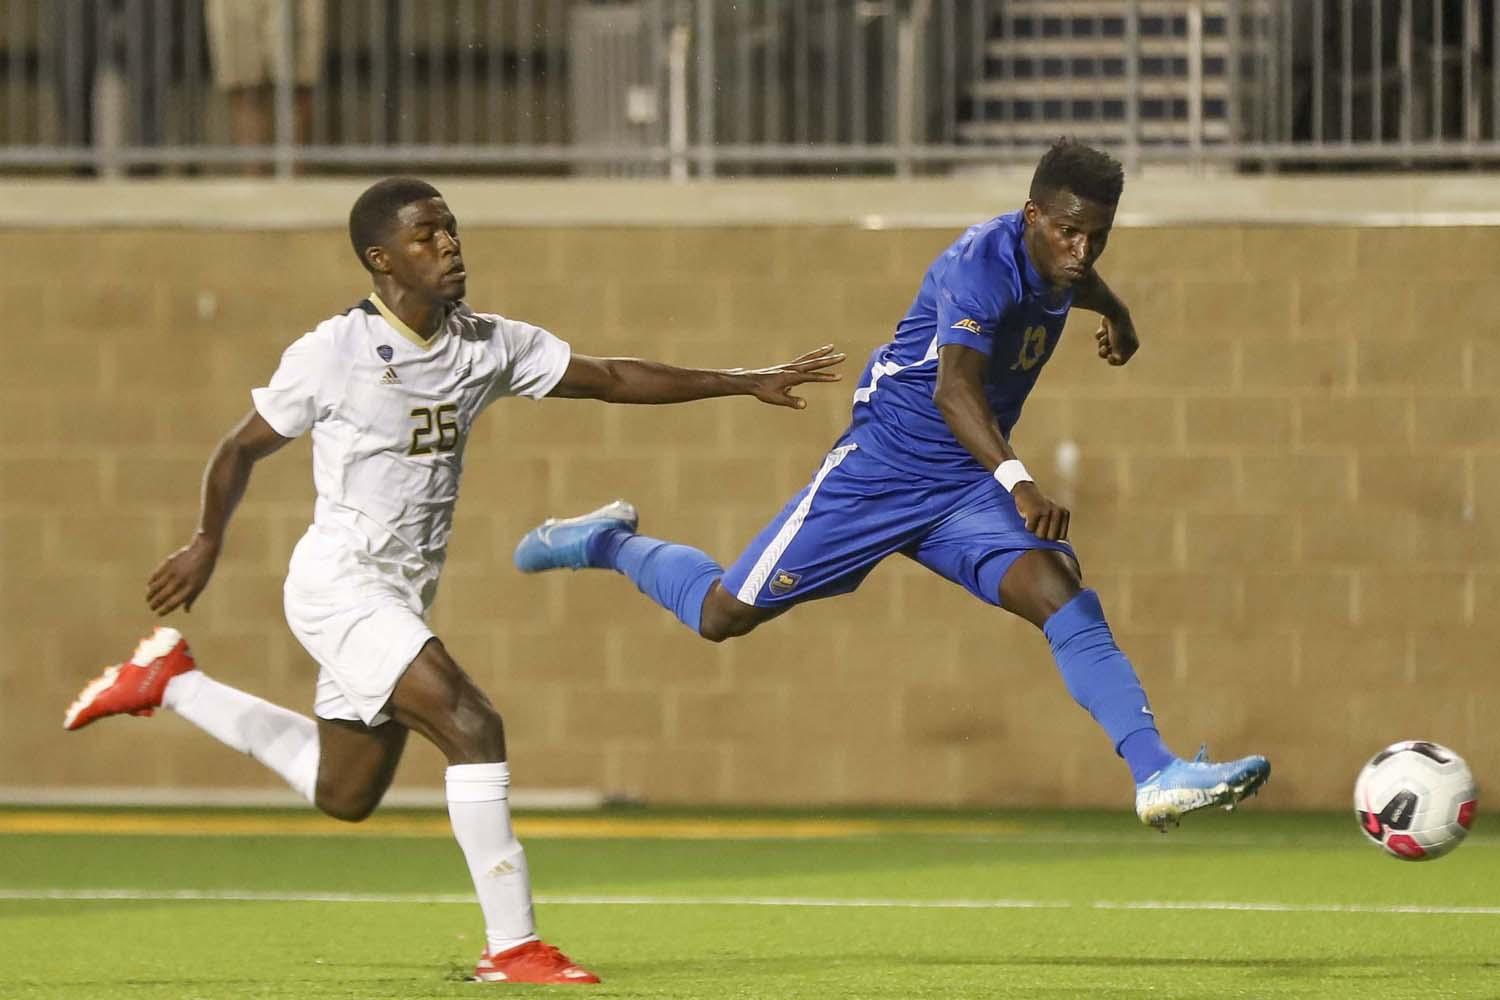 Junior forward Alexander Dexter (1) scored the only goal of the night during Pitt's 1-0 victory over Akron.